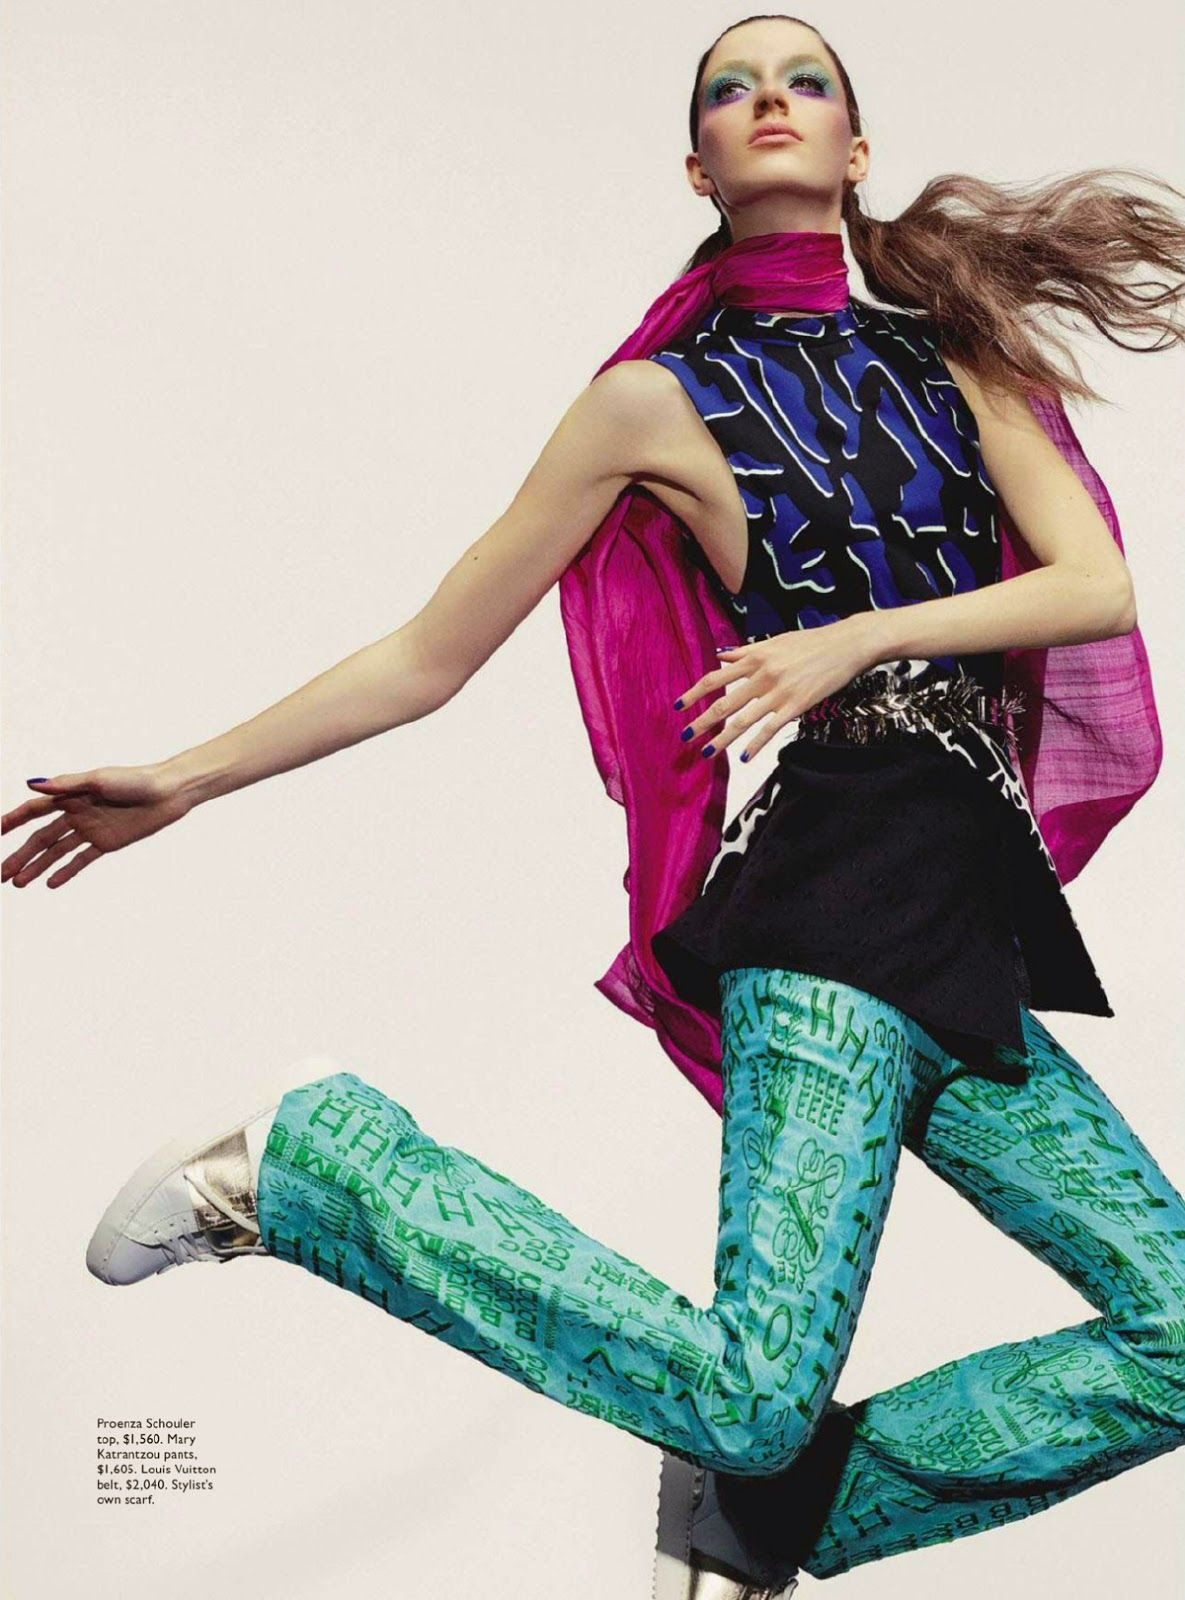 in the fashion editorial, 2015 Rich Mix in the edition of January, the Vogue Australia .  The model Josephine Van Delden uses very colorful looks and a mix of prints and textures, the excess is the trend for the next year. She wears Alexander McQueen, Gucci, Louis Vuitton and other brands. Photography by Robbie Fimmano and fashion production by Natasha Royt .